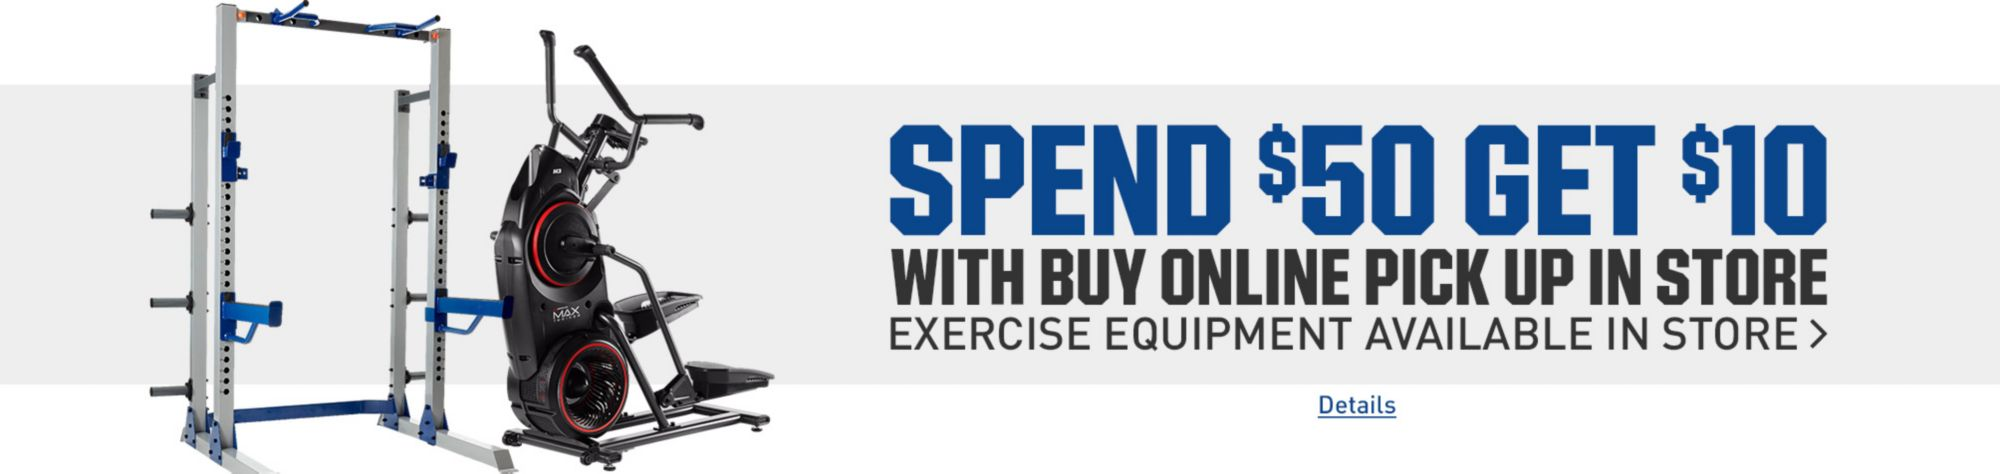 Spend $50 Get $10 with Buy Online Pick Up In Store Exercise Equipment Available In Store